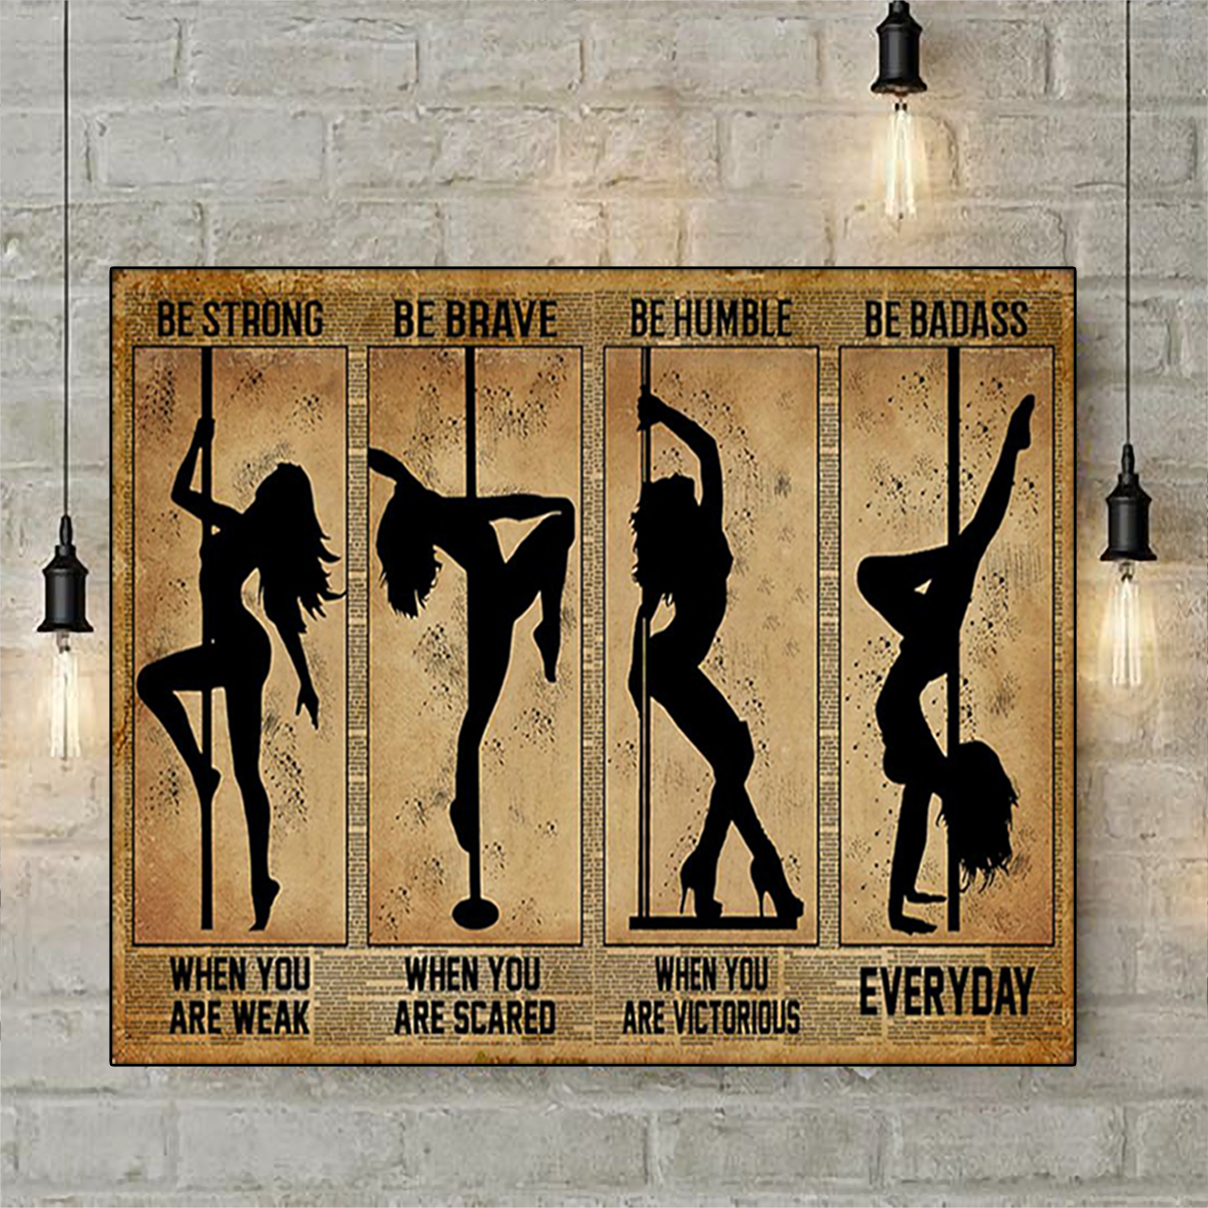 Pole dance be strong be brave be humble be badass poster A1